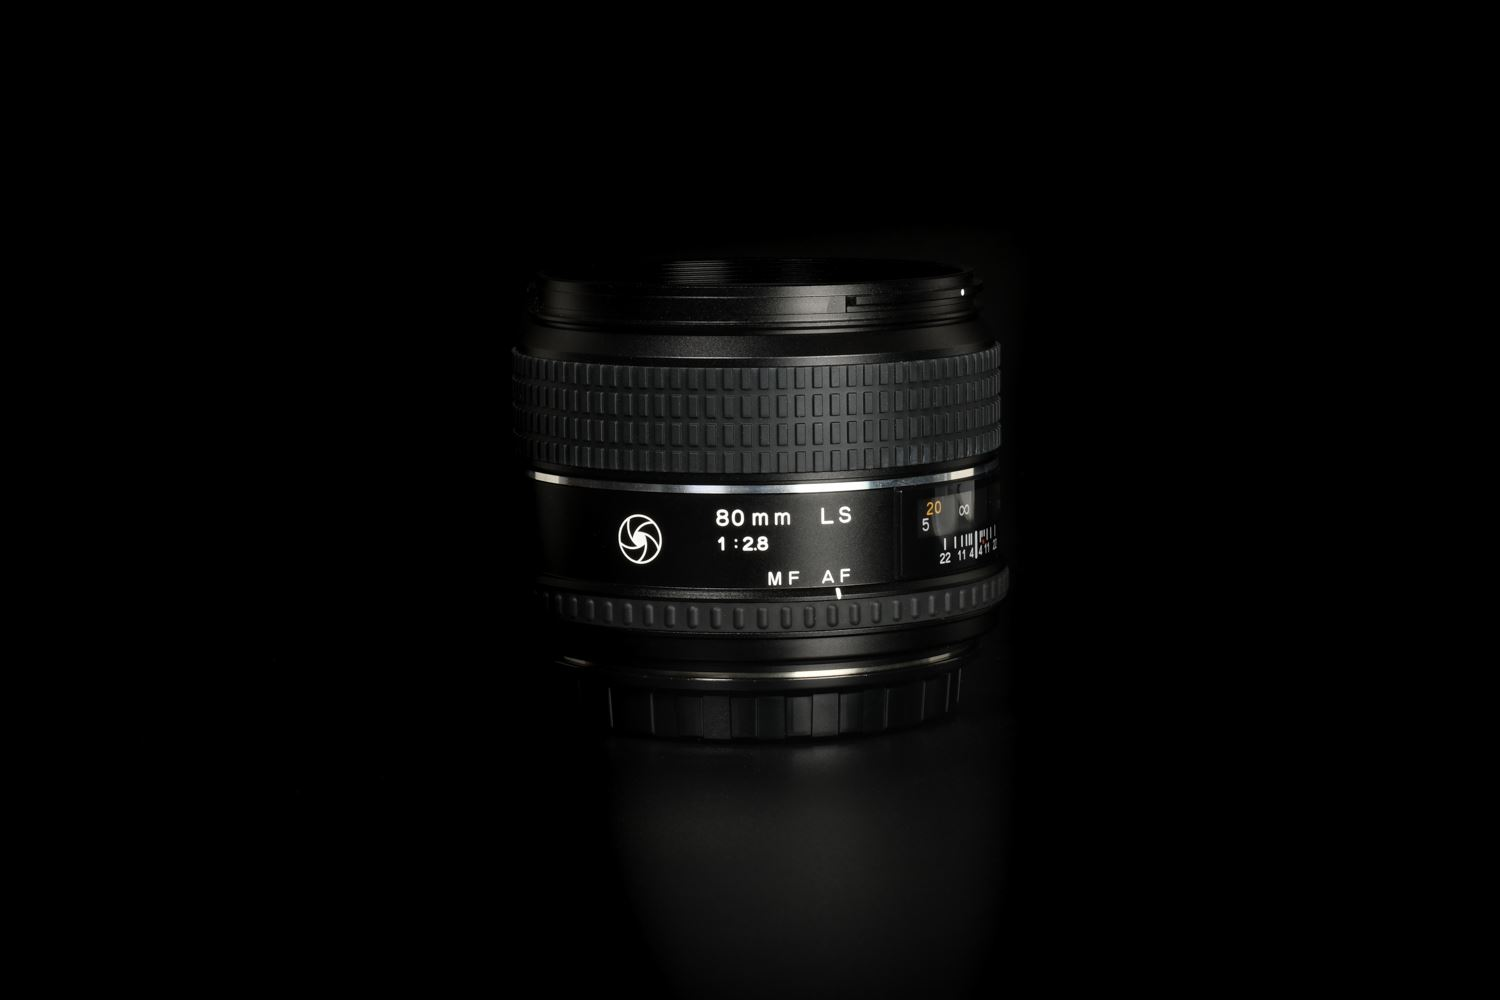 Picture of PhaseOne IQ180 Digital Back with XF Camera Body, Schneider 80mm f/2.8 LS, 55mm f/2.8 LS